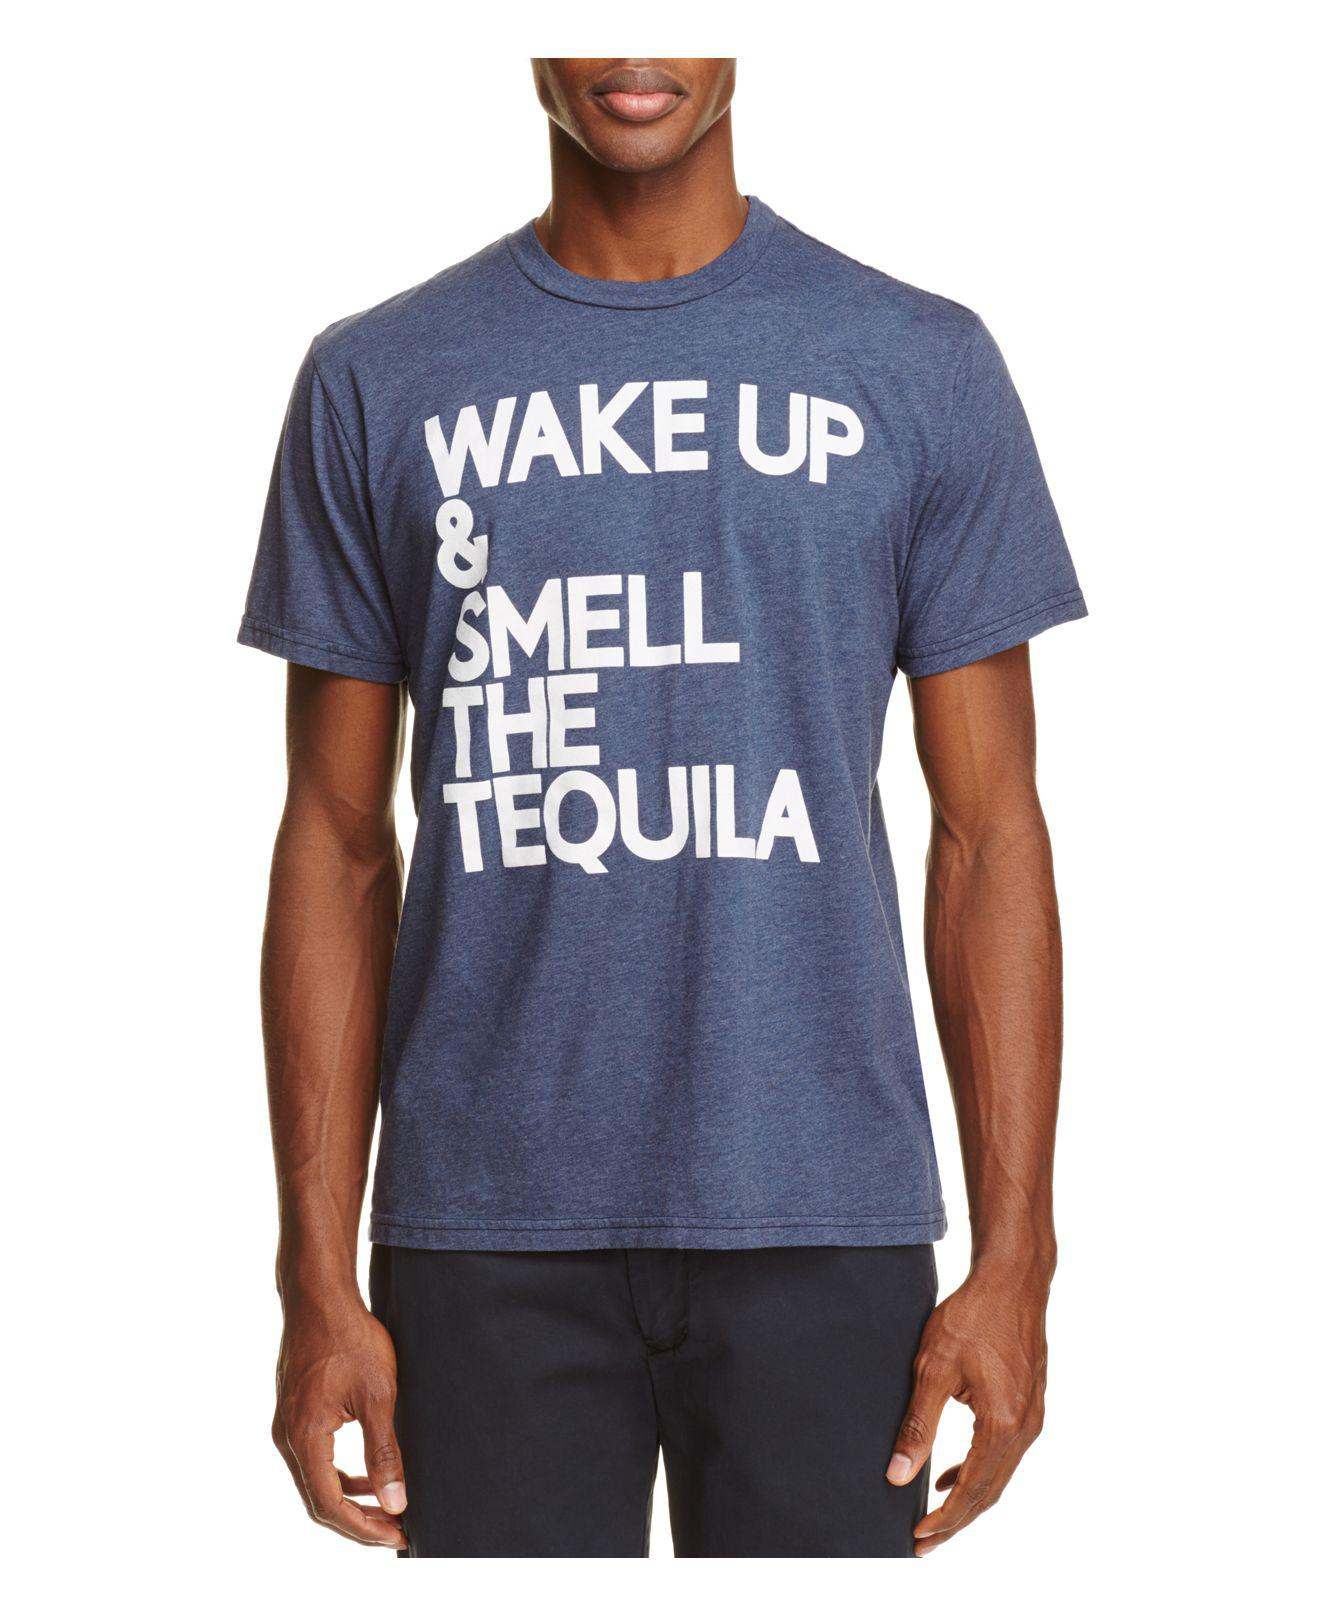 cc36e395 Lyst - Chaser Wake Up Tequila Graphic Tee in Blue for Men